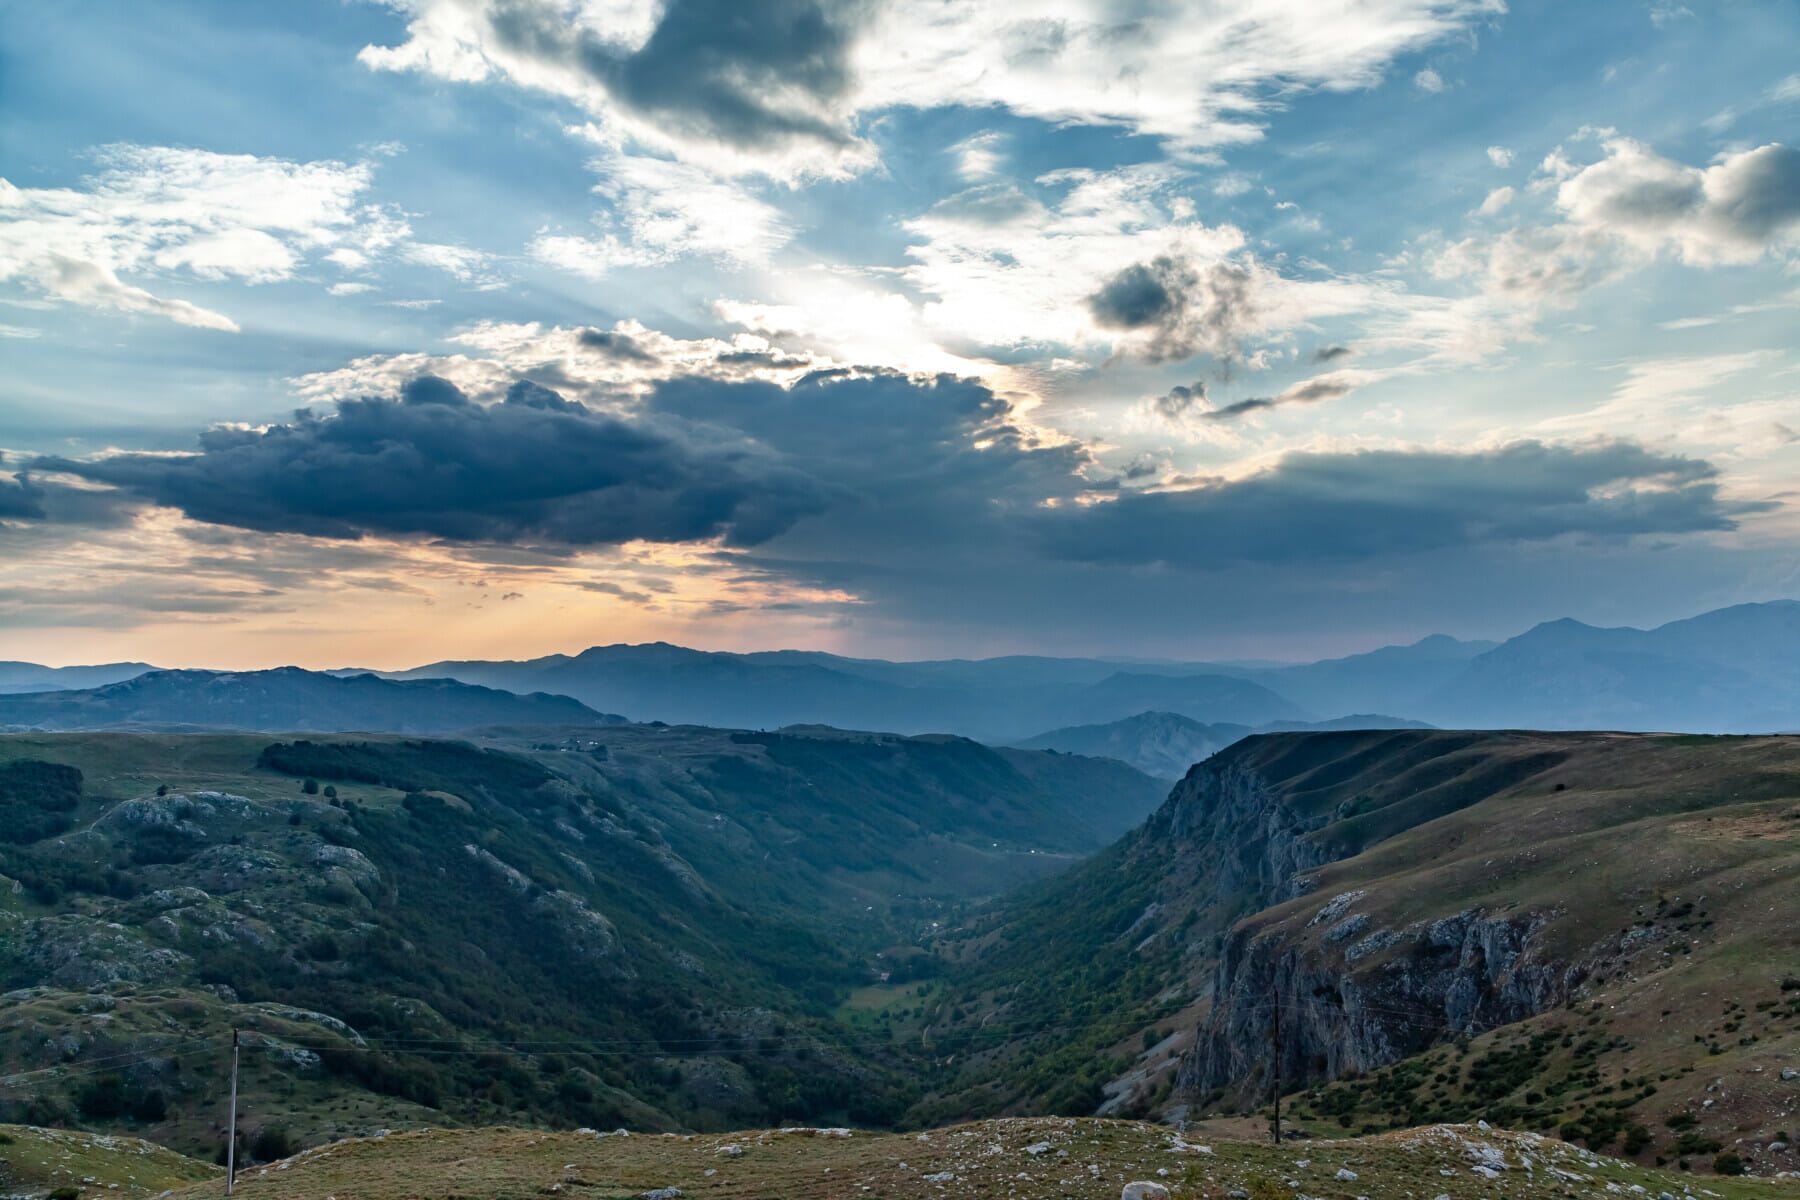 panoramic view of green valley with stones in Durmitor massif, Montenegro